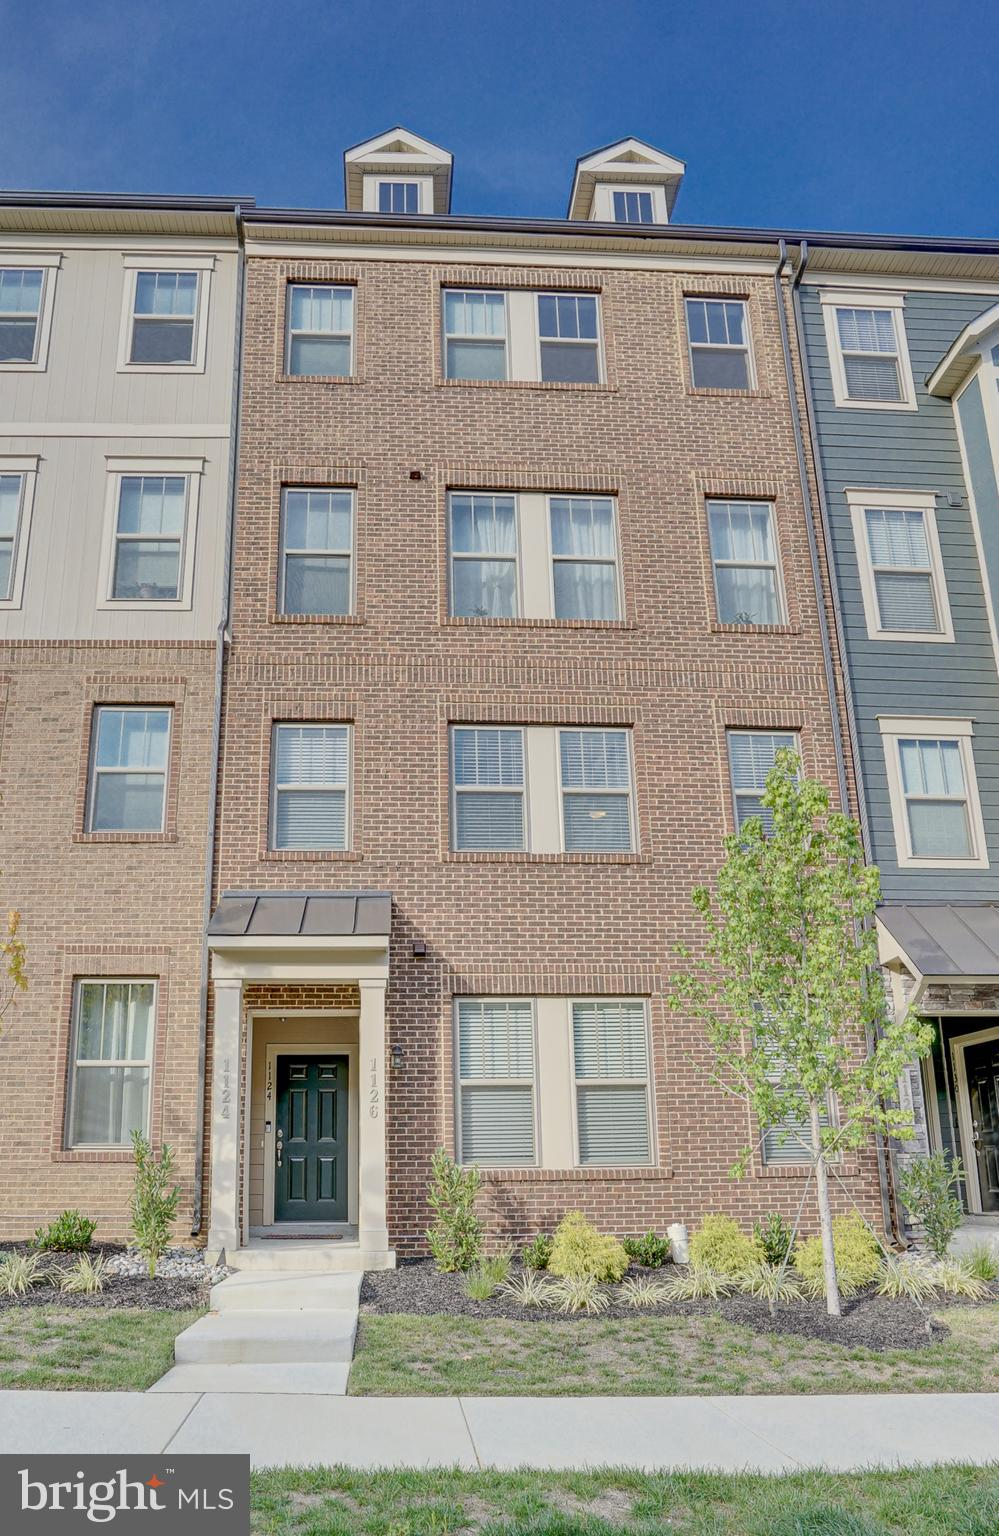 ONLY ONE YEAR OLD! Tuscarora Village at Leegate is a charming upscale residential community only minutes from the Village at Leesburg featuring boutiques, restaurants, CMX cinemas, Bowlero, LA Fitness, Wegmans and over 75 Boutiques.  This two level Townhouse/Condo is made for the smart shopper.  Entertain your guests in the gourmet kitchen with plenty of space for bar stools and open to the Family Room.  Main level has powder room, Coat Closet and access to the garage.  Drive in from the alleyway behind with electric door opener and room for the second car in the driveway.  Public Parking in Front and All lawn maintenance is taken care of as well as snow removal.   Additional Guest Bedroom with its own Bath and spacious closet.  Smart, efficient, and available for a private purchaser or investor purchase.  Current tenant is great and willing to stay. Don't miss this opportunity to get into this exciting neighborhood at a great price!